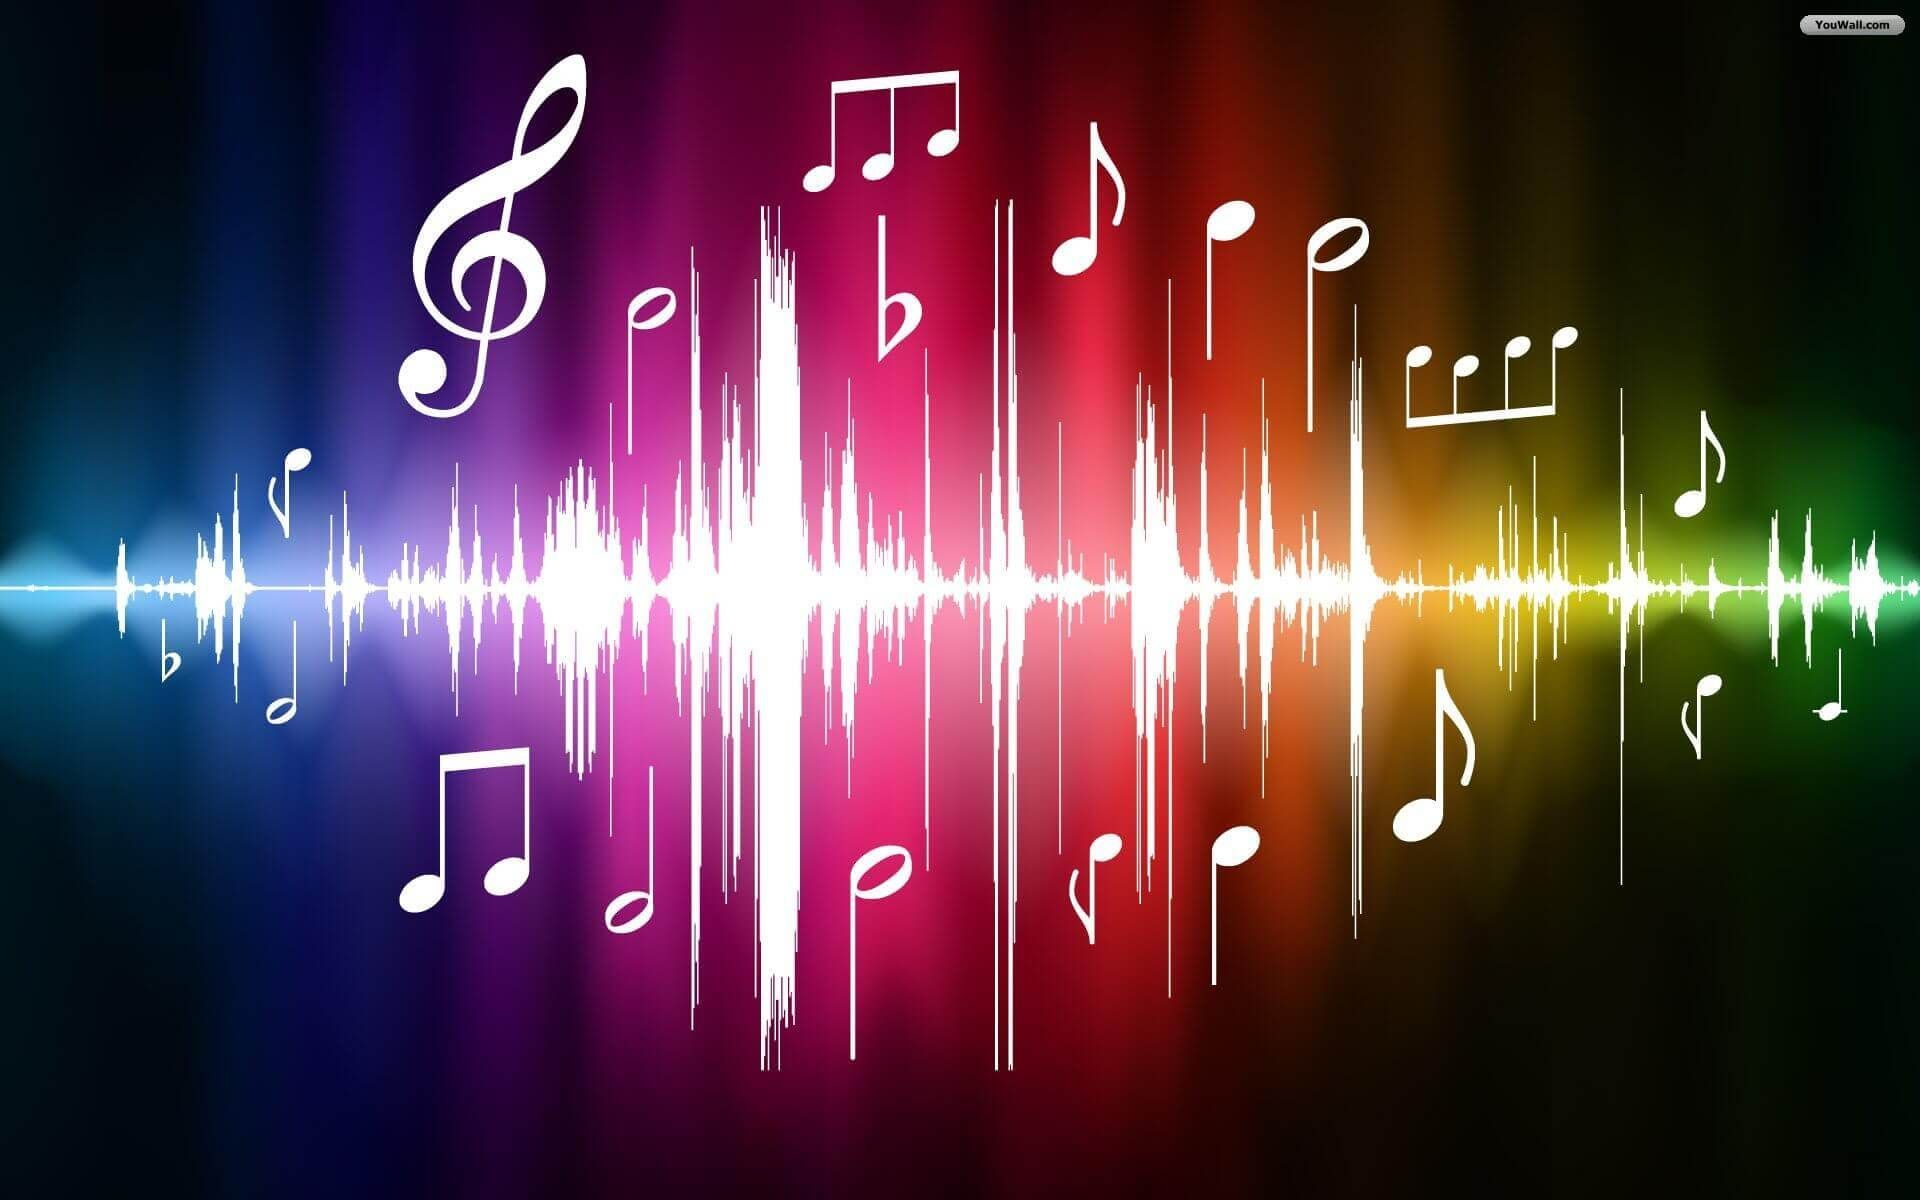 Free Mp3 Music Download In 2020 With Images Music Notes